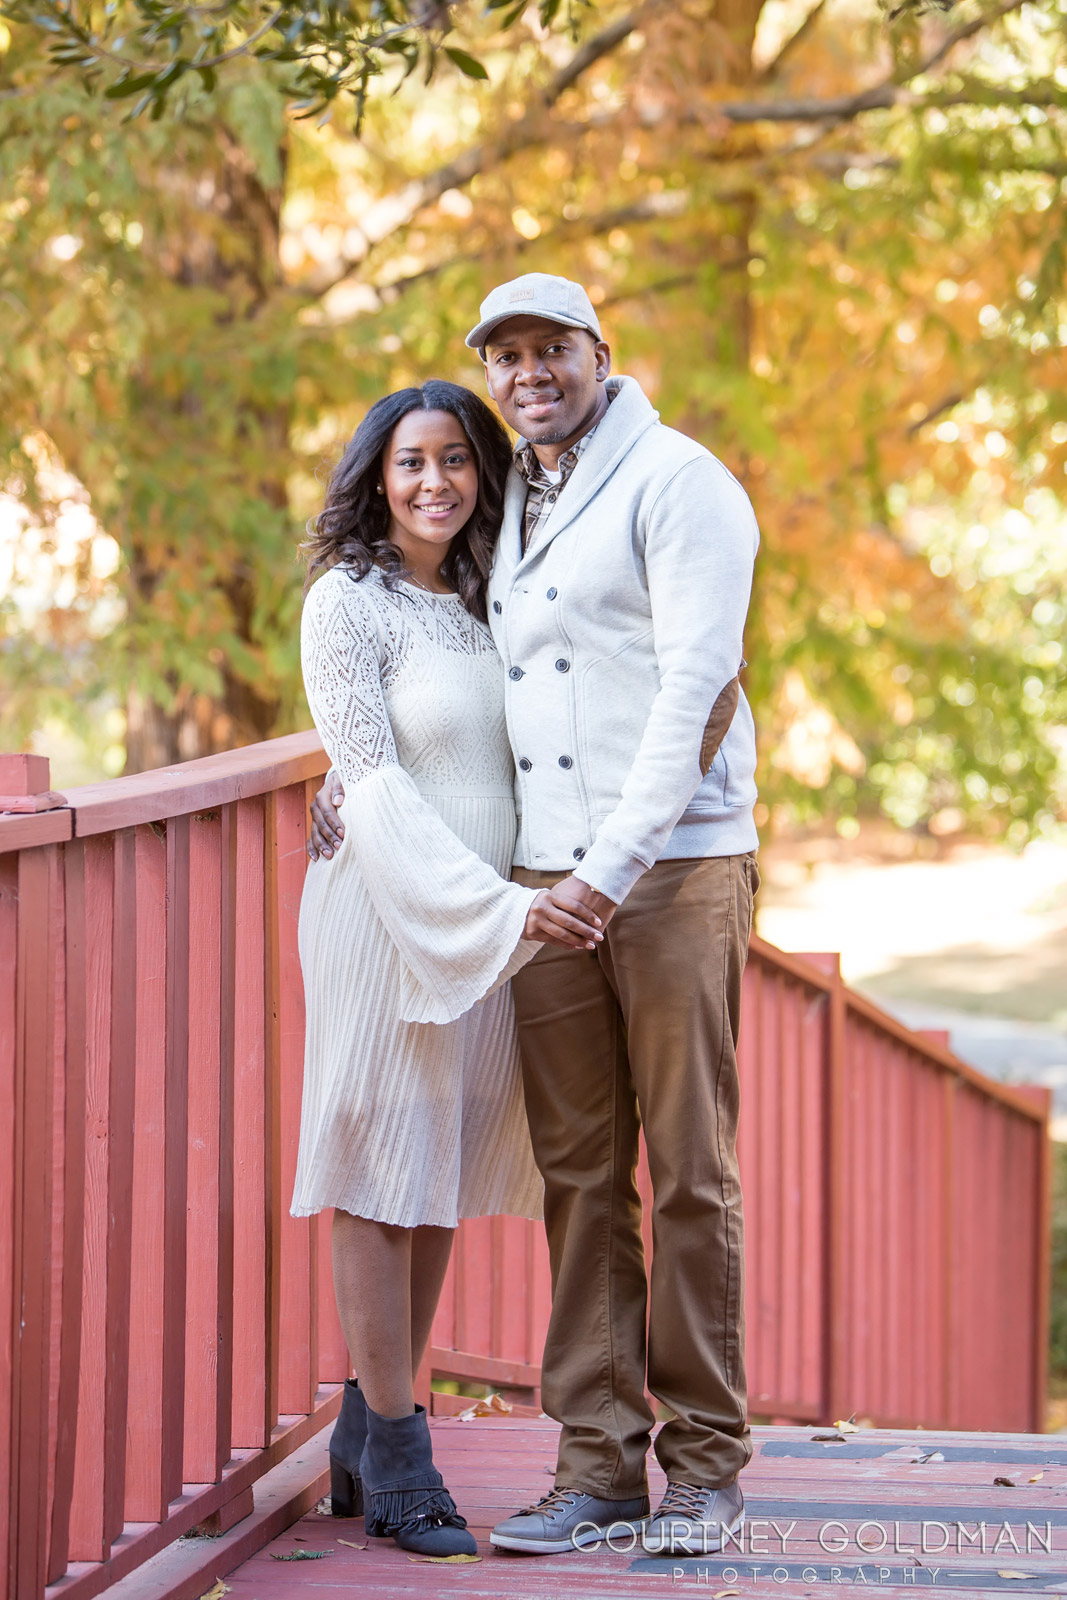 Atlanta-Couples-Engagement-Proposal-Photography-by-Courtney-Goldman-10.jpg